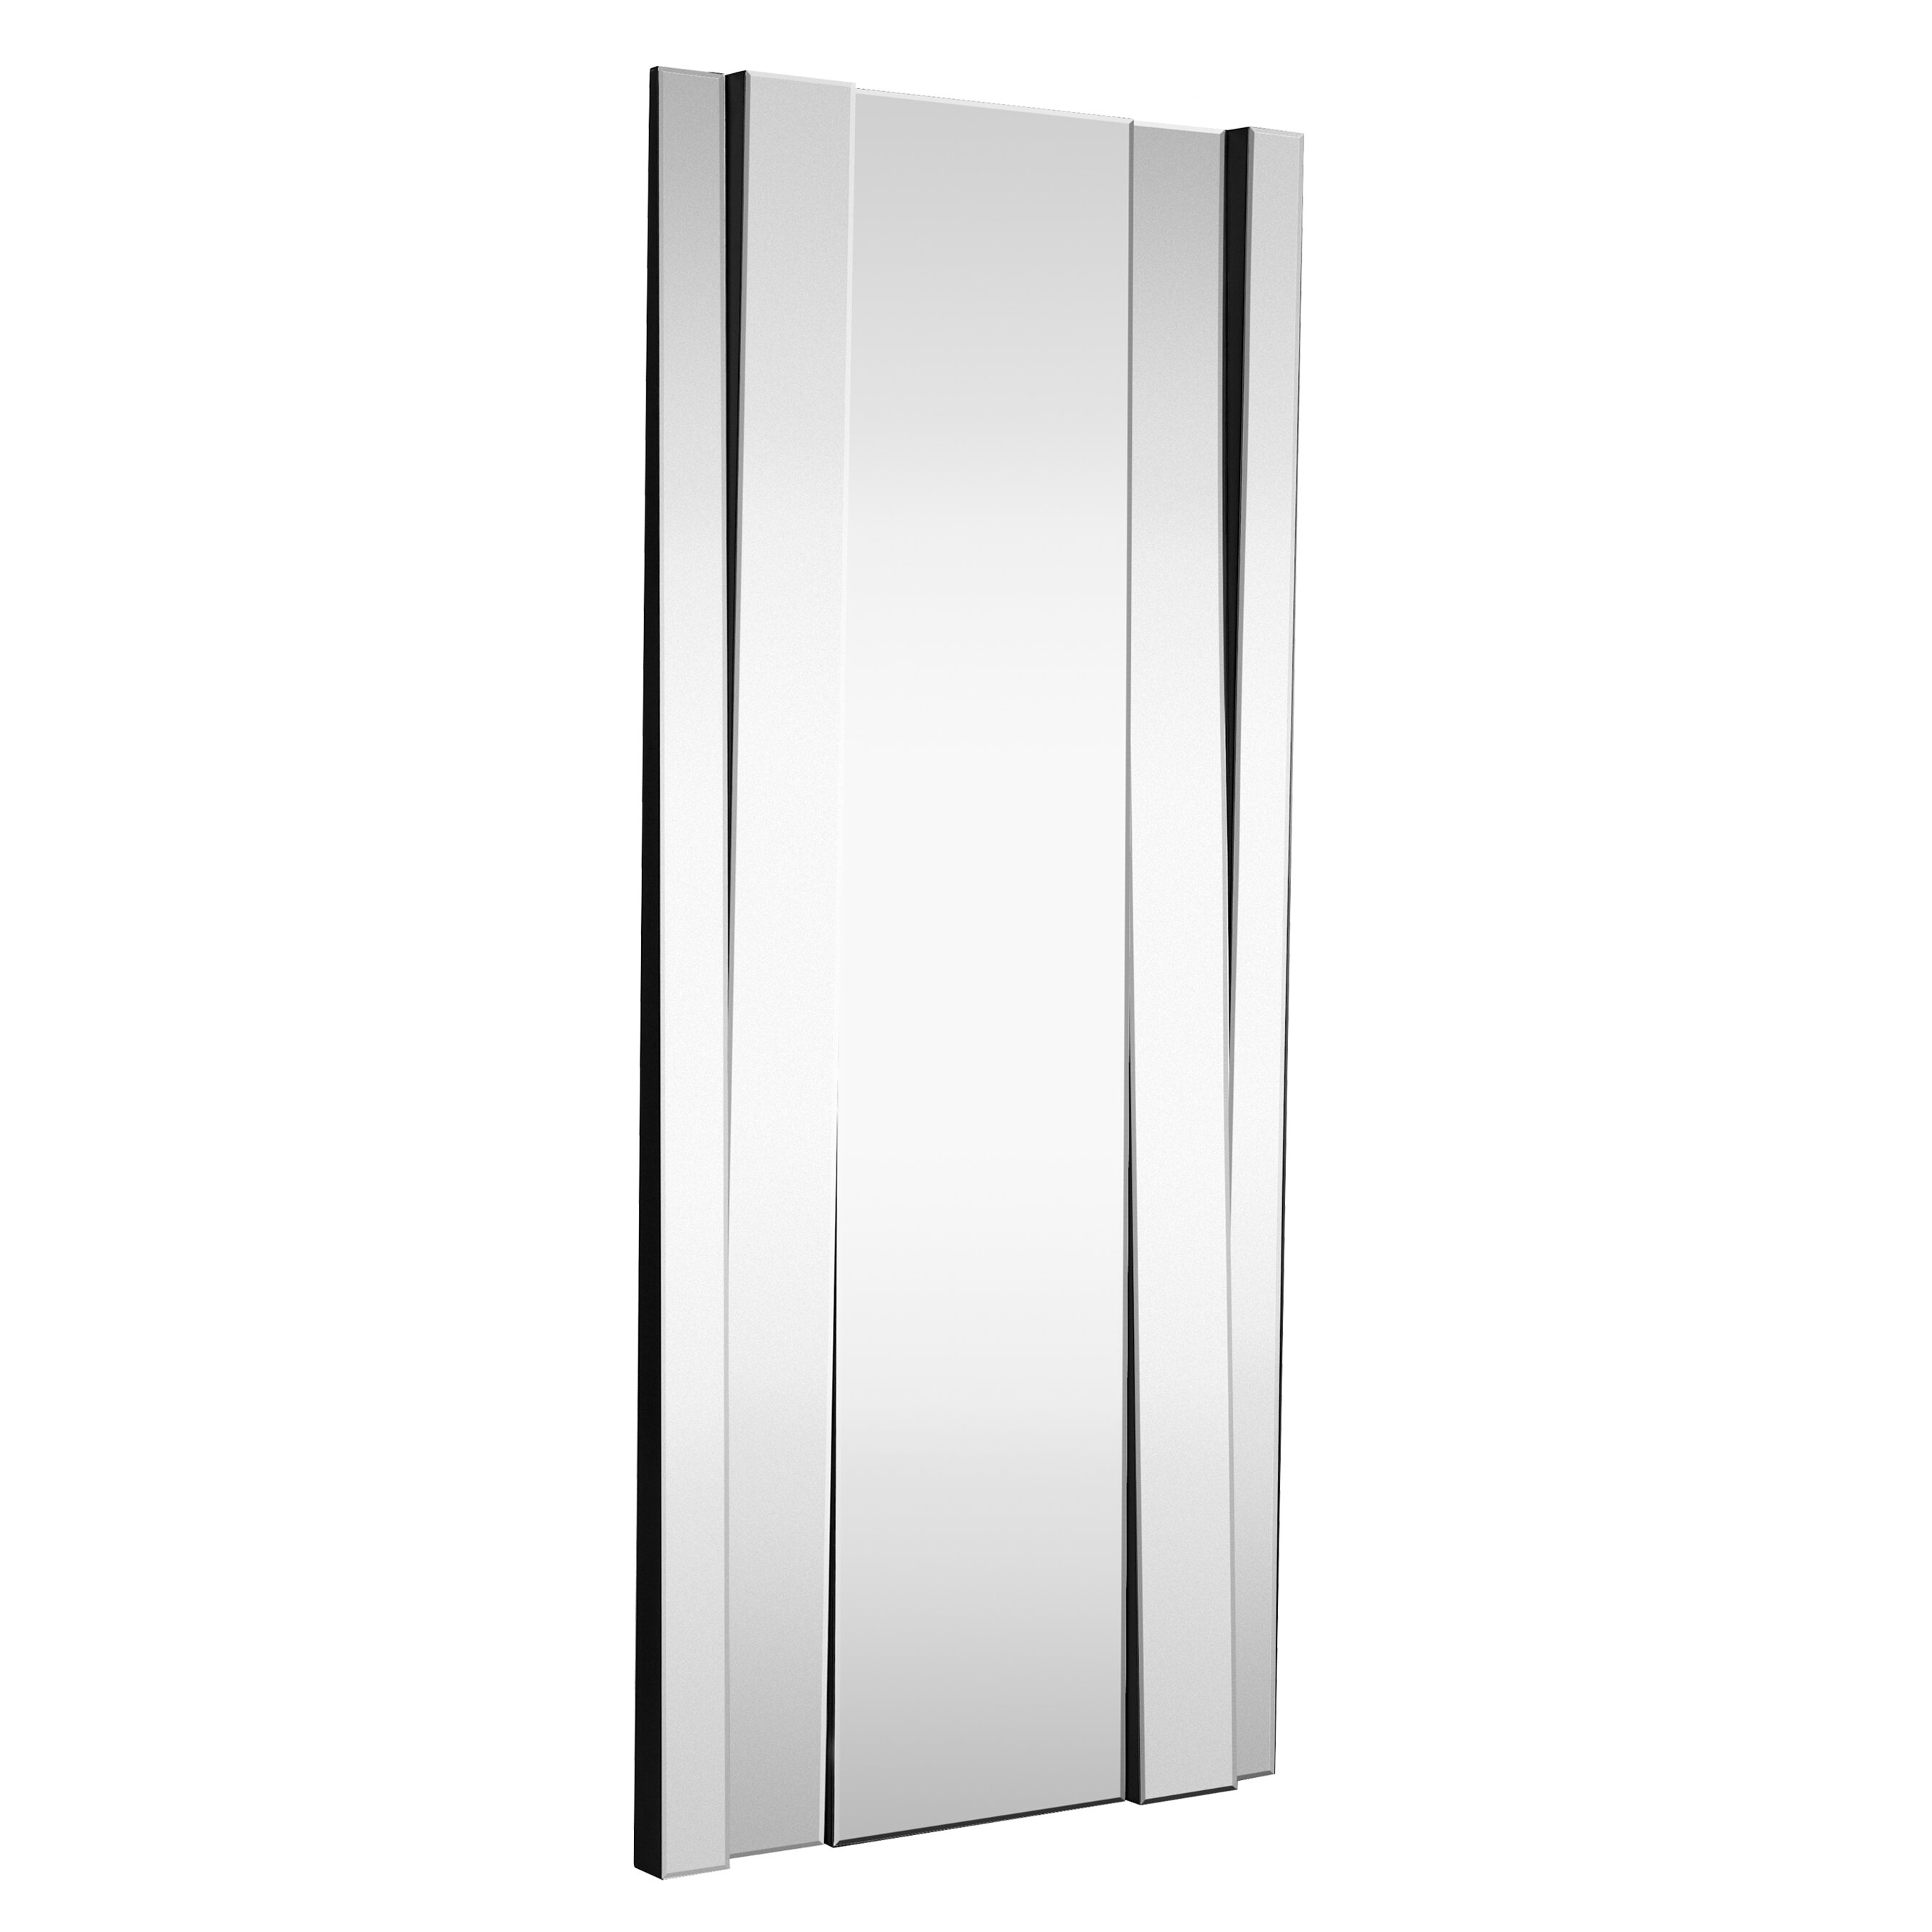 Amazoncom Large Framed Wall Mirror with 3 Inch Angled